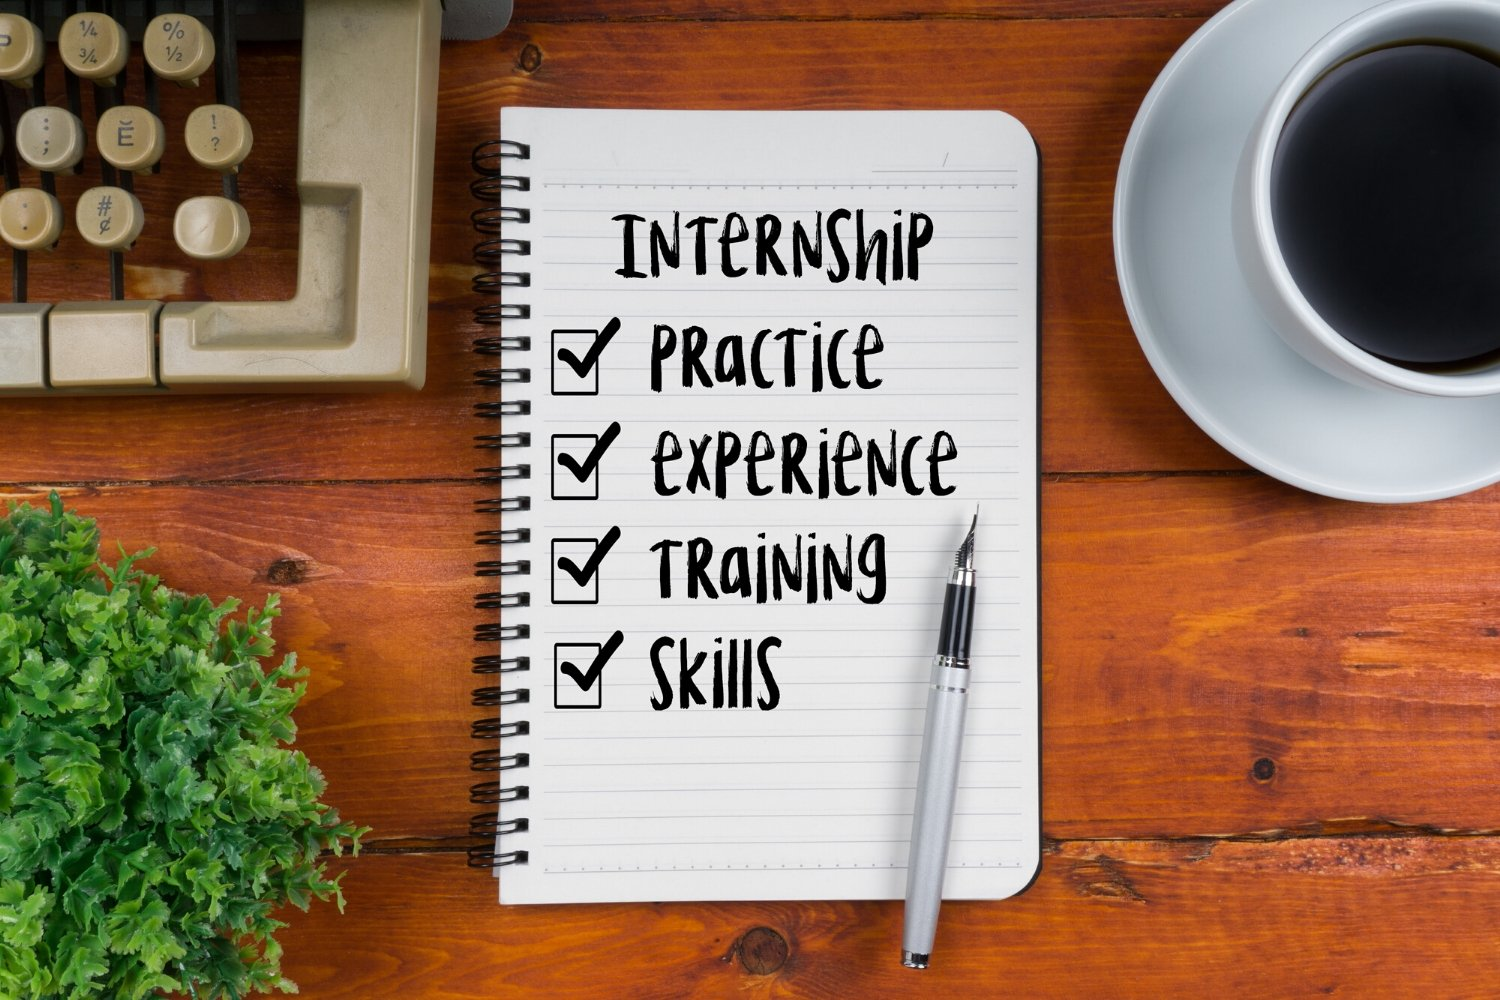 How Long Are Internships Typically